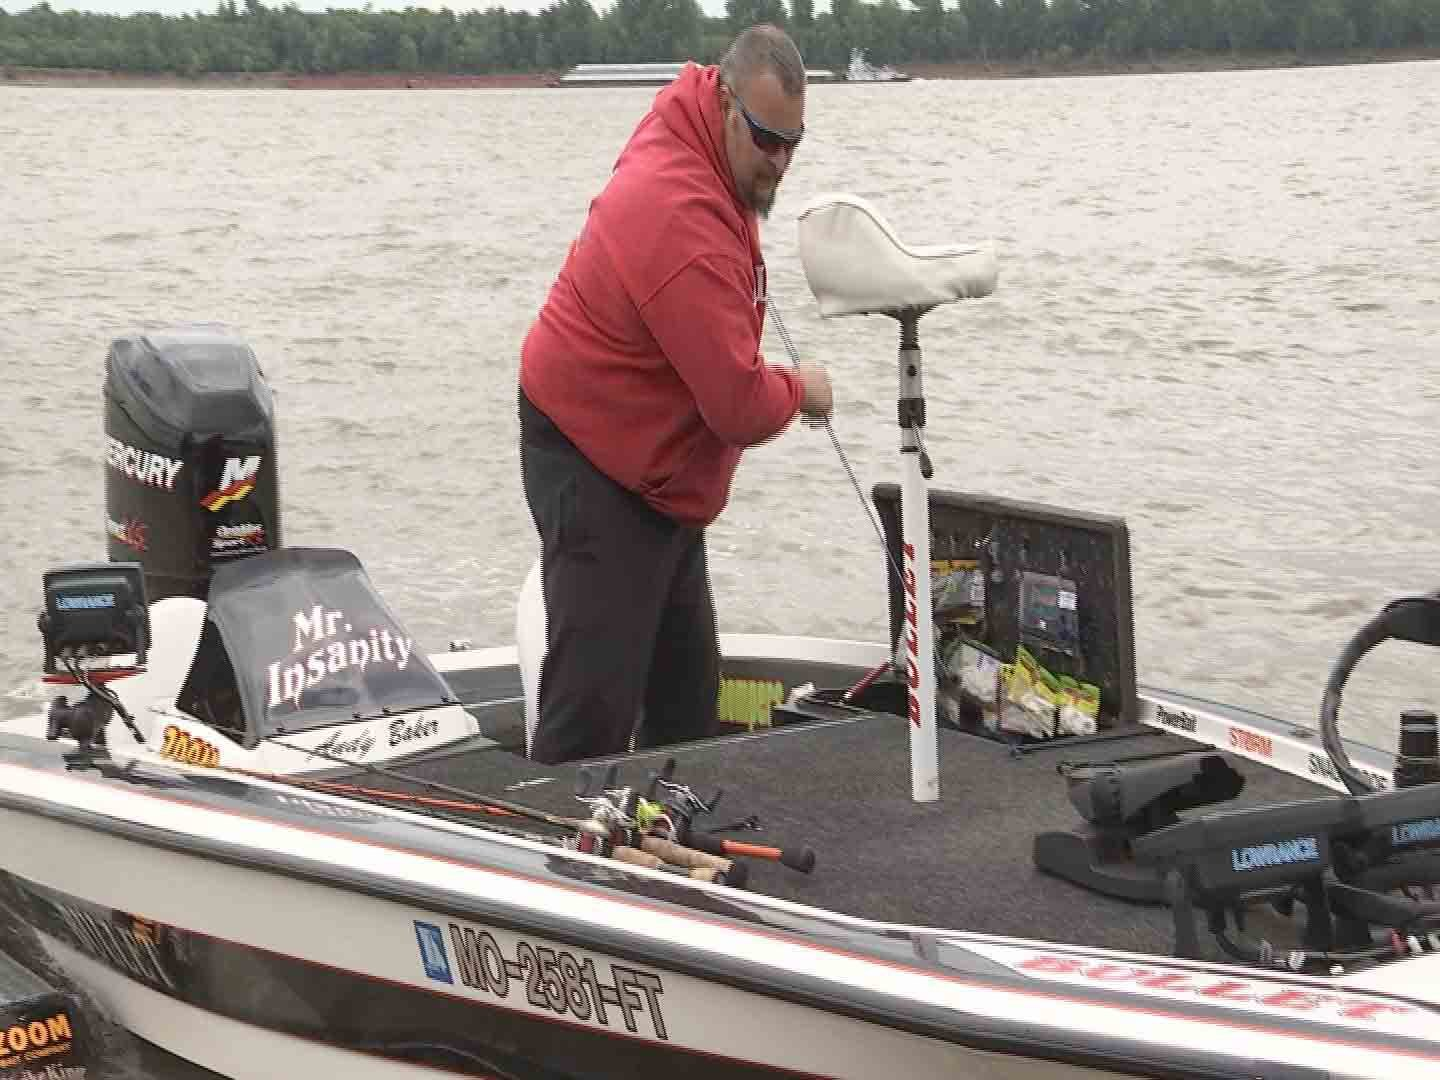 Andy Baker says awareness is key when out on his boat.